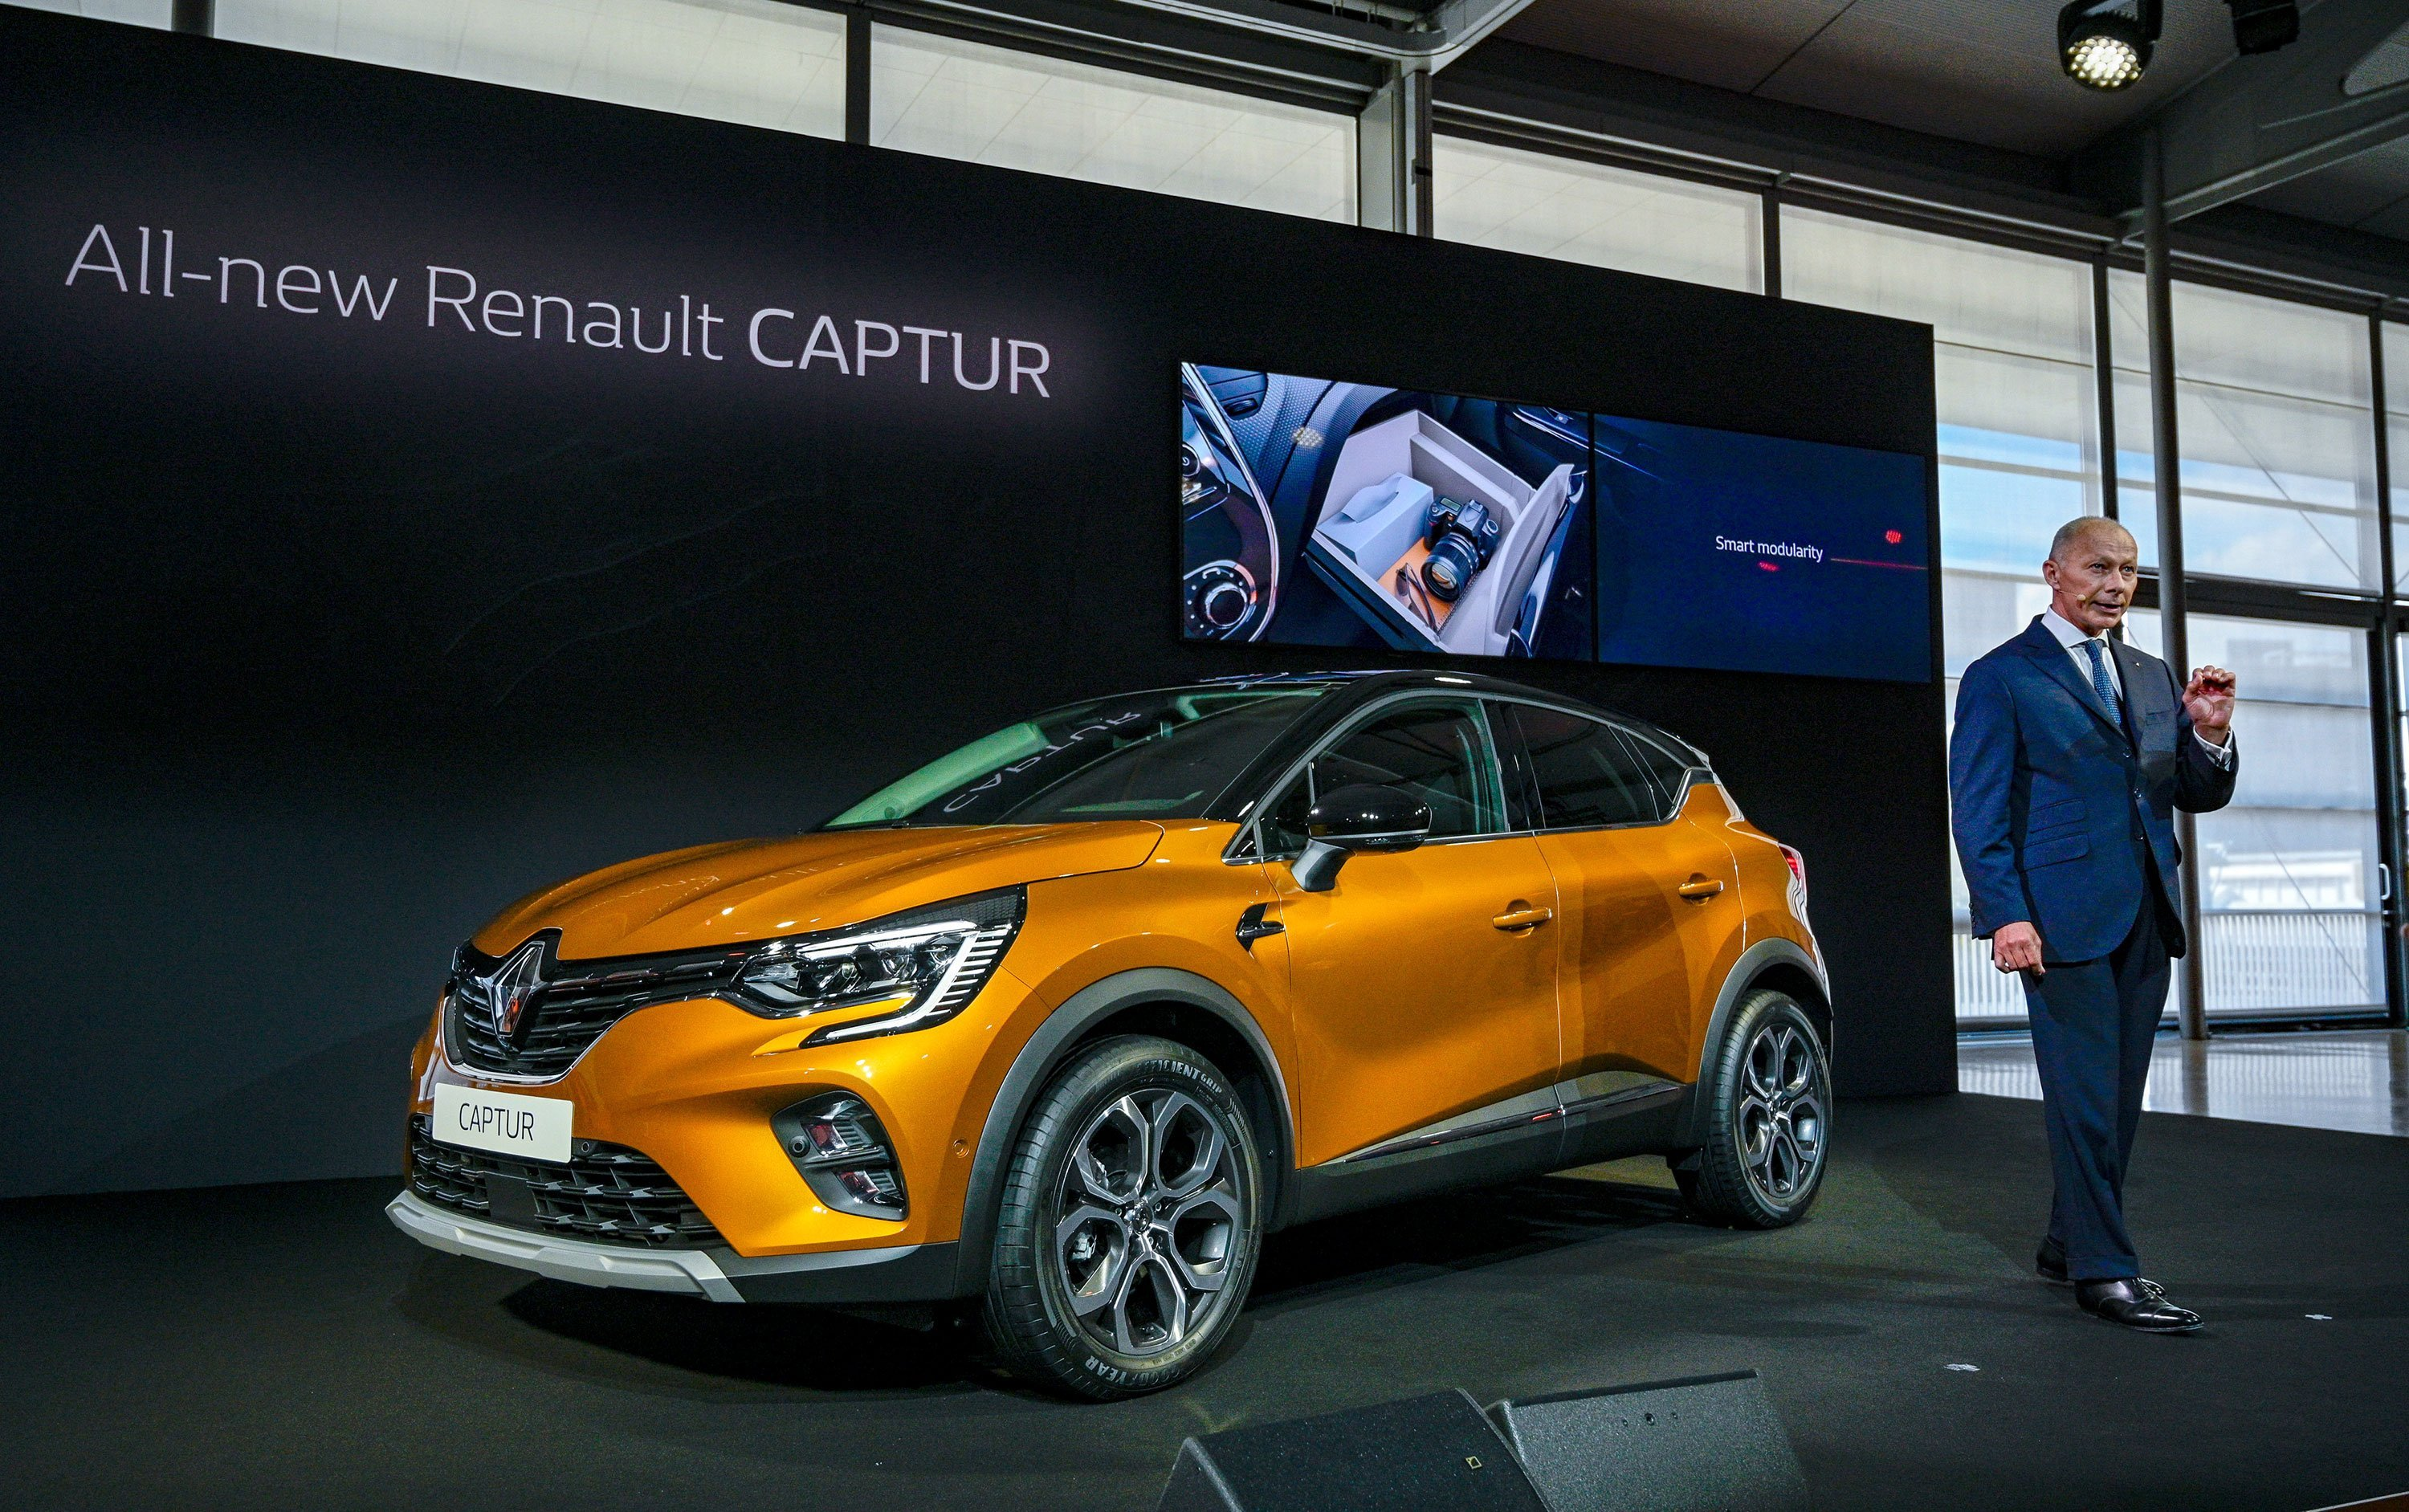 Renault's problems are piling up. Now its sales are slumping